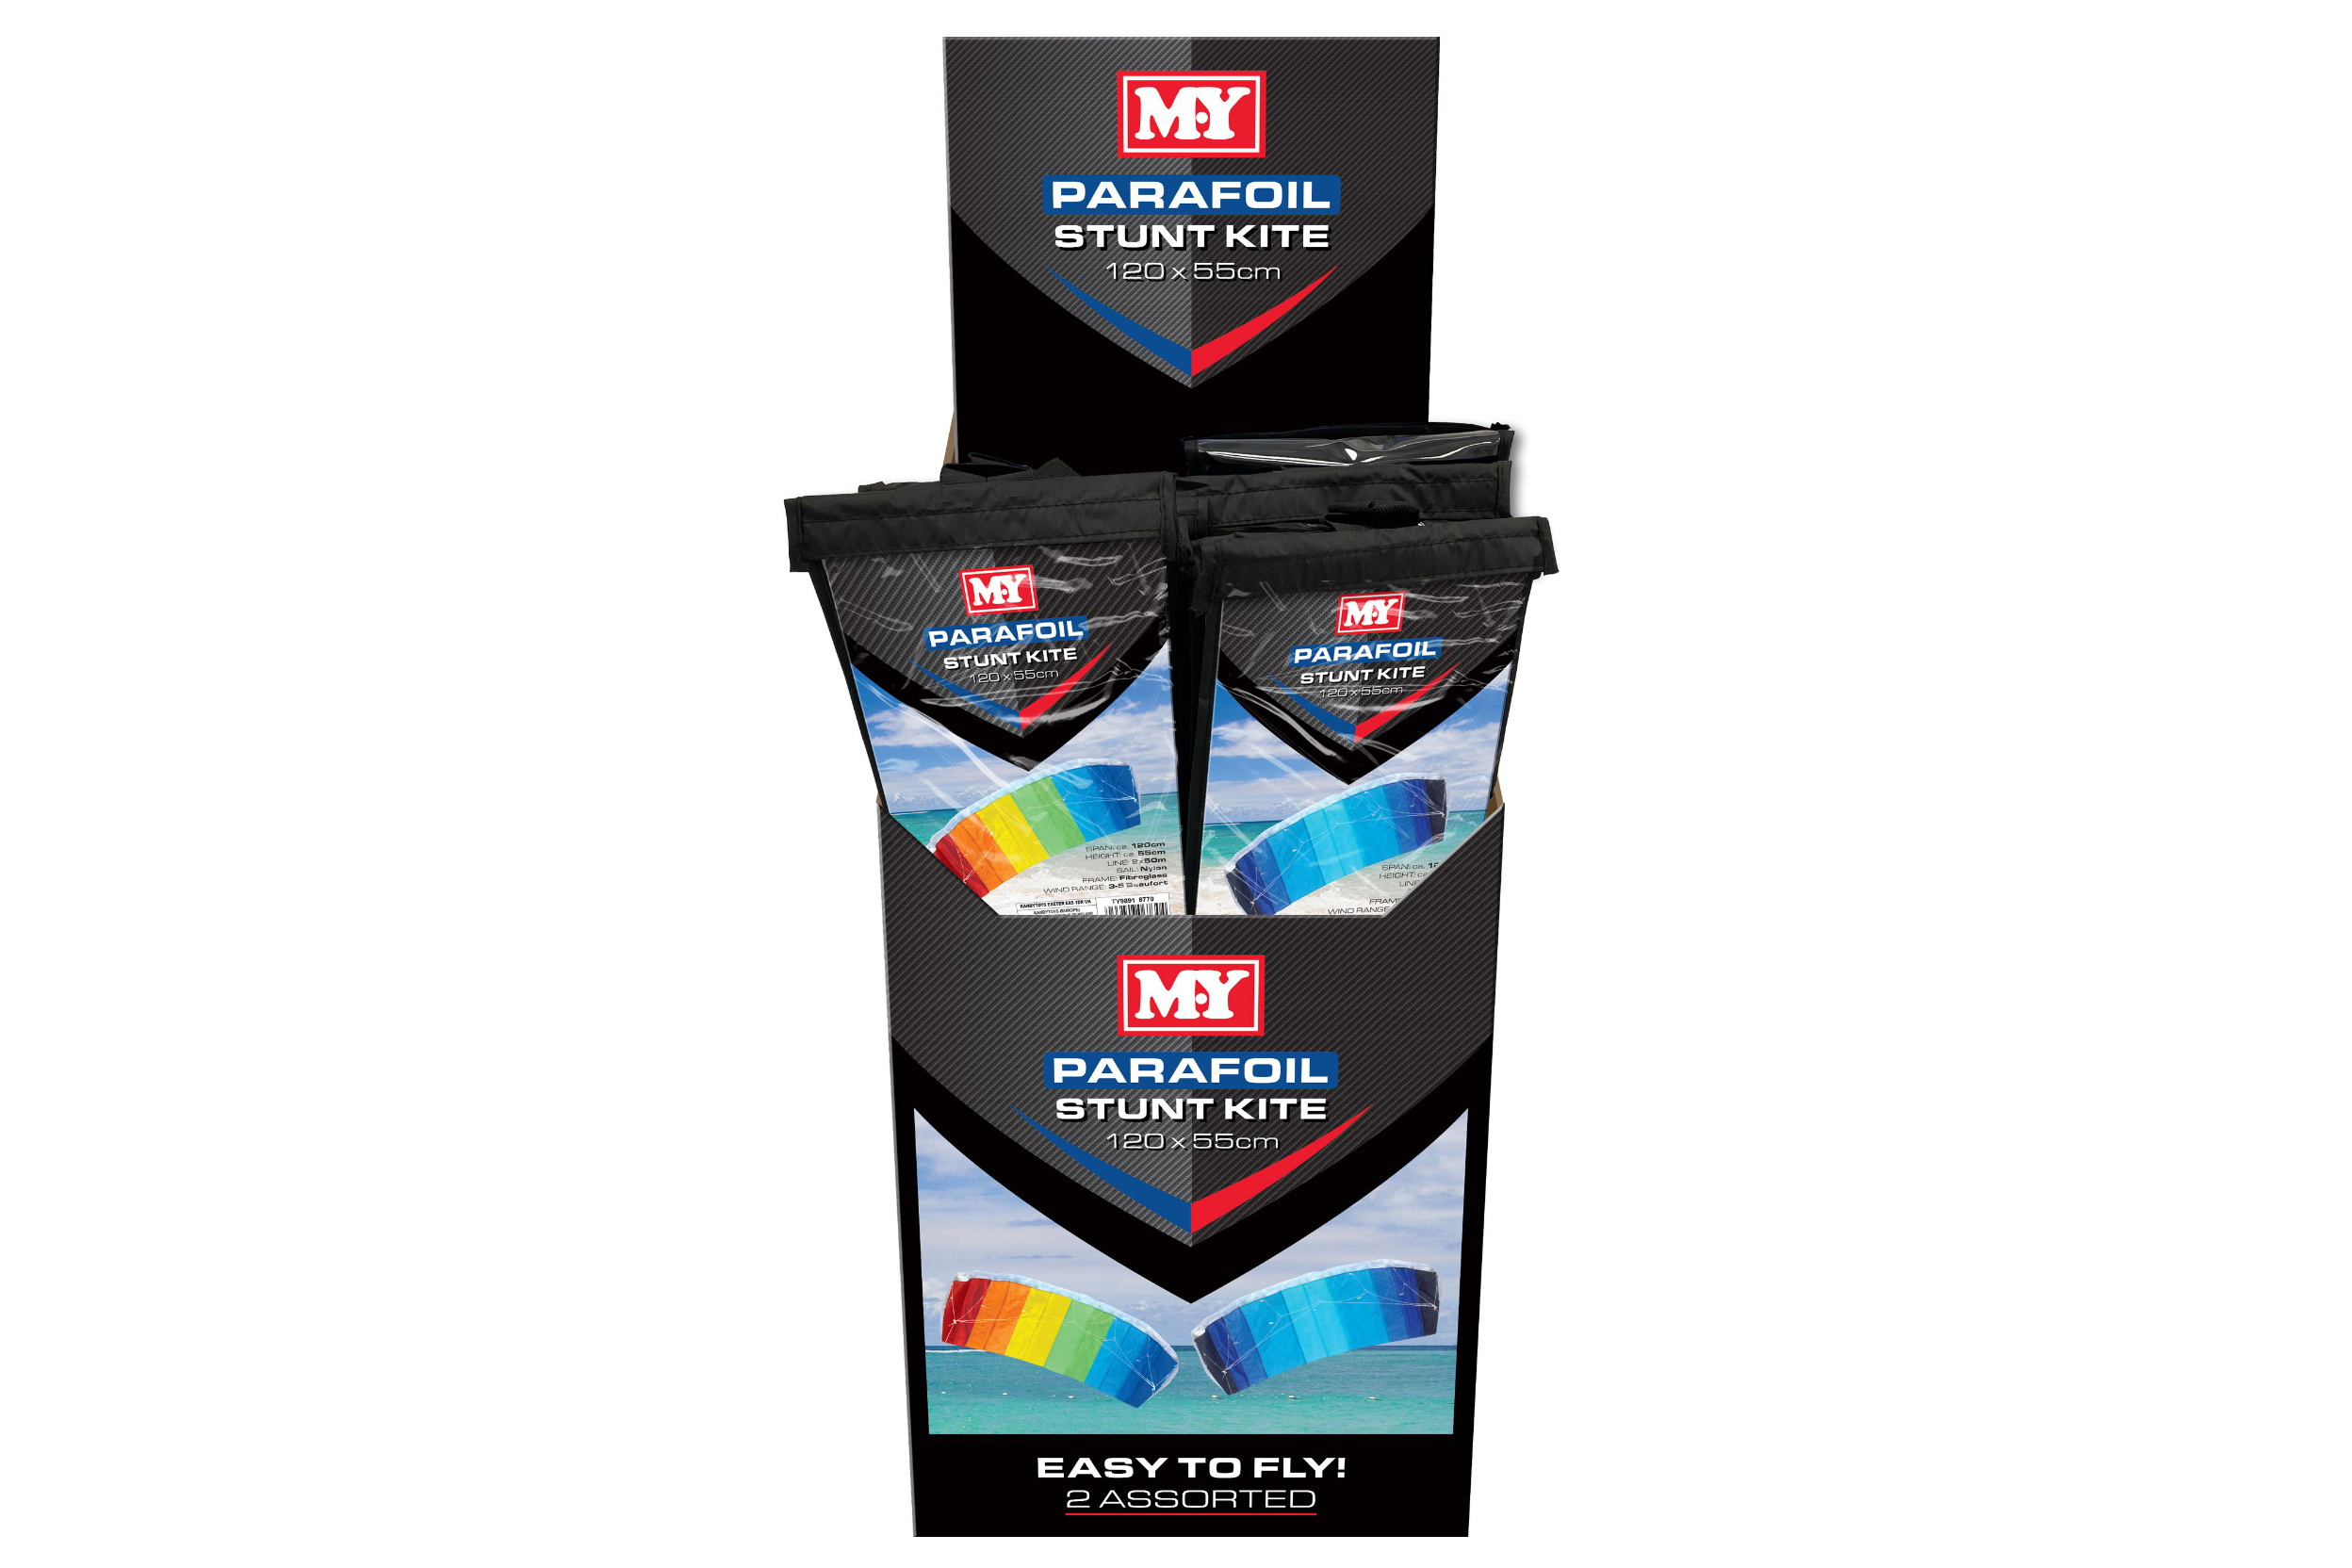 120cm x 55cm Nylon Parafoil Stunt Kite In Display Box